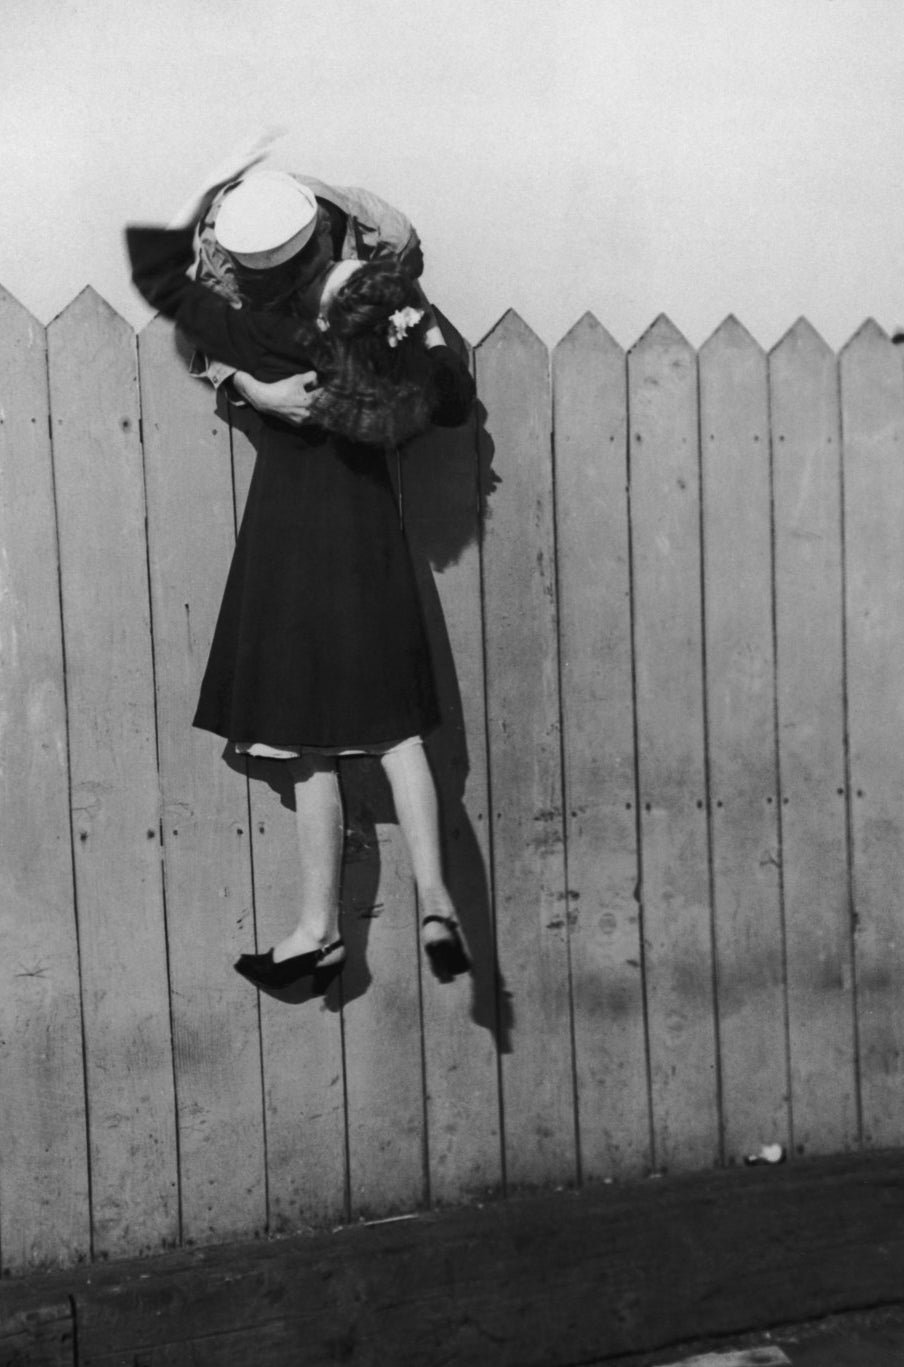 A sailor leans over a picket fence and lifts his girlfriend up for a kiss. 1945.